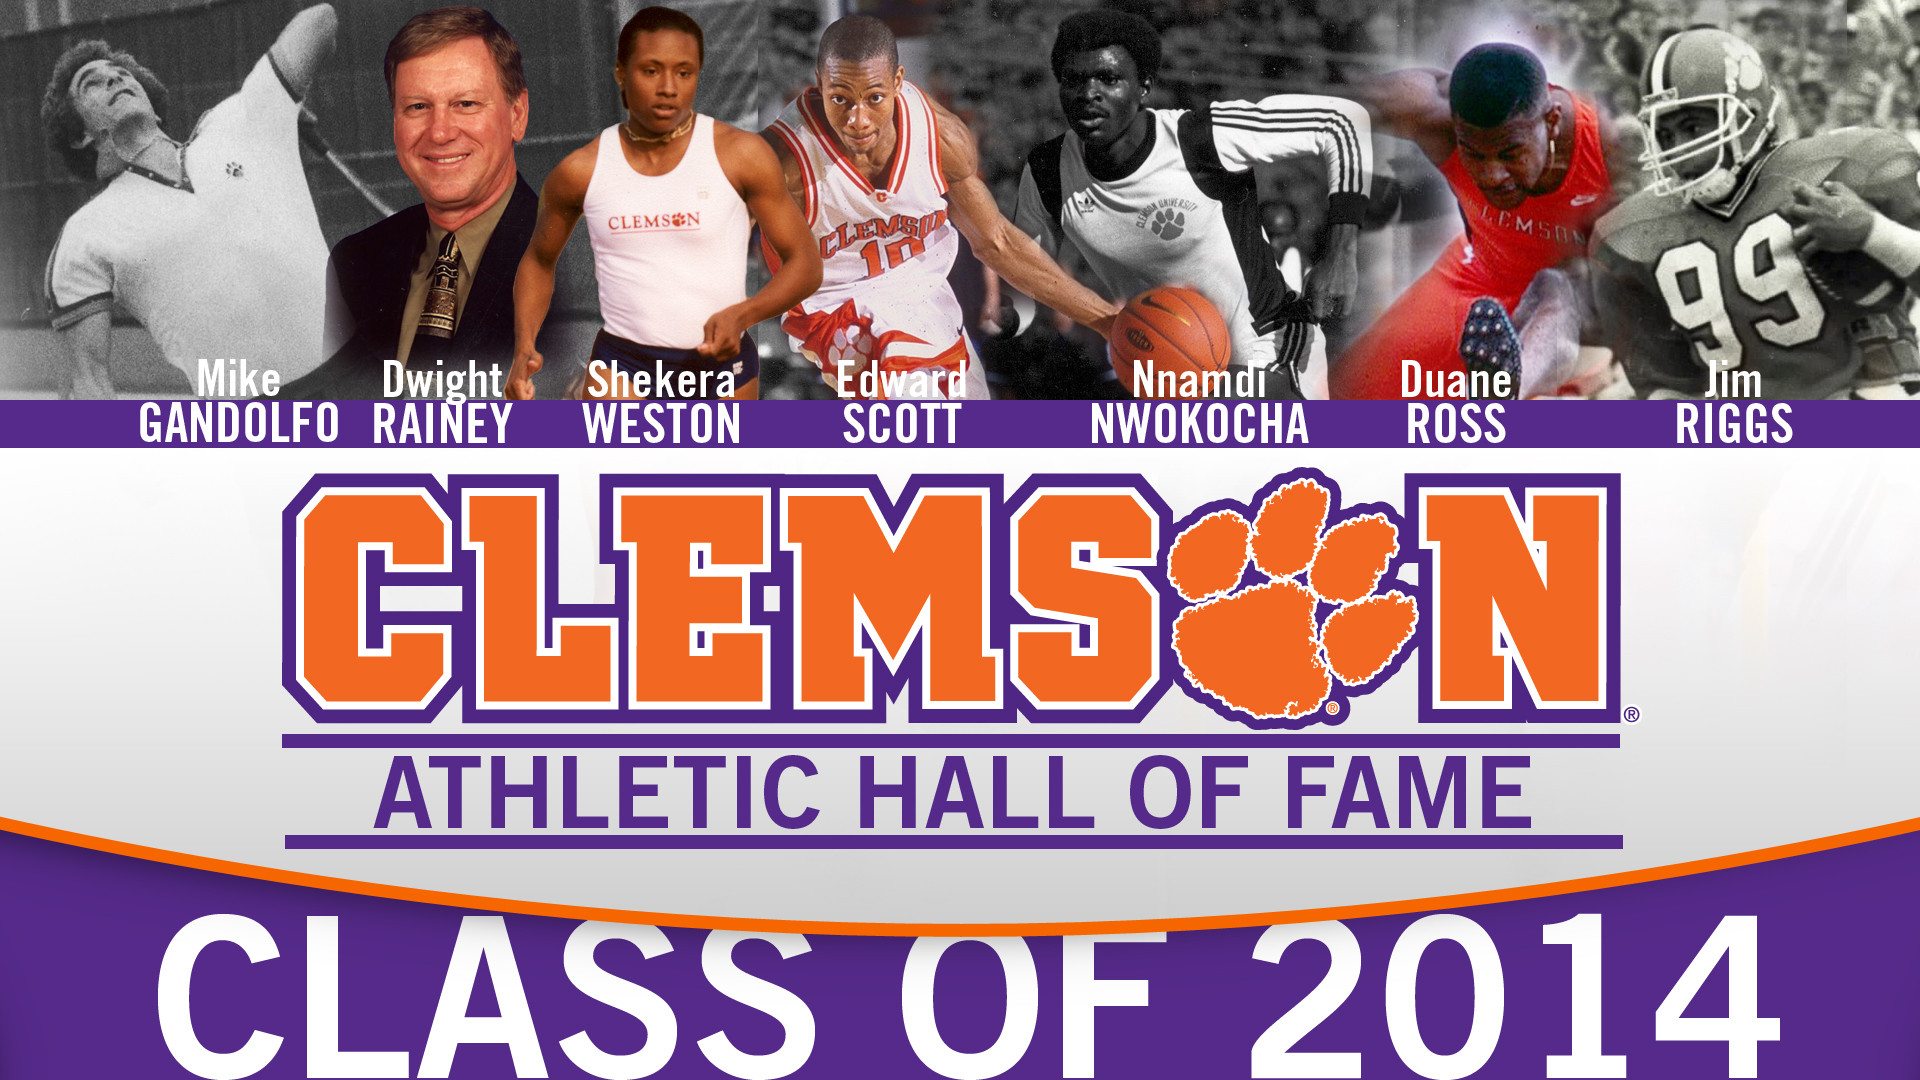 Clemson Athletic Hall of Fame to Induct Seven in 2014